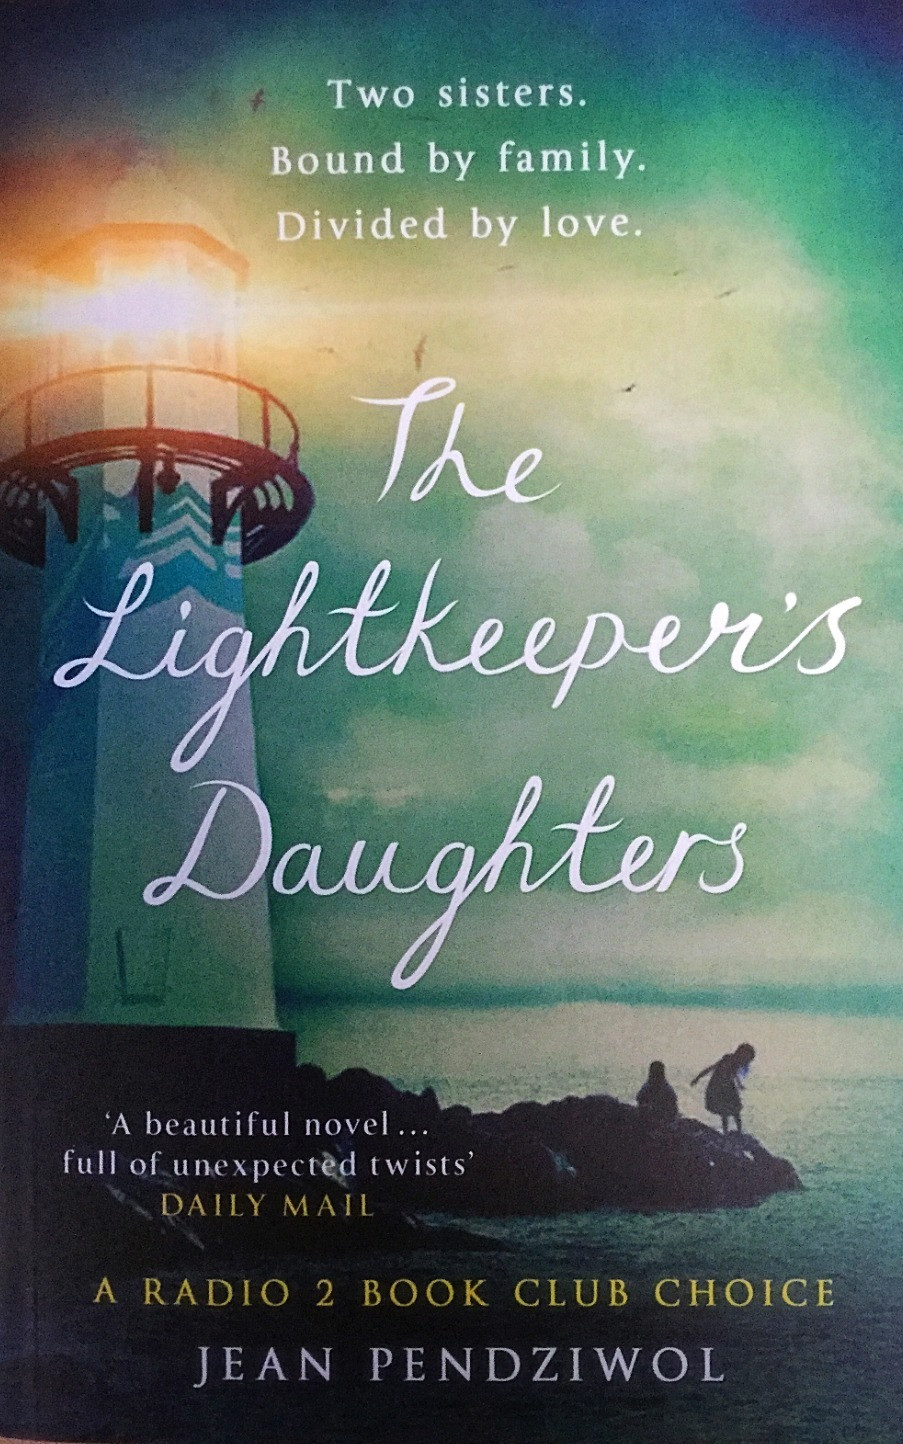 Picture of 'The Lightkeeper's Daughters' cover